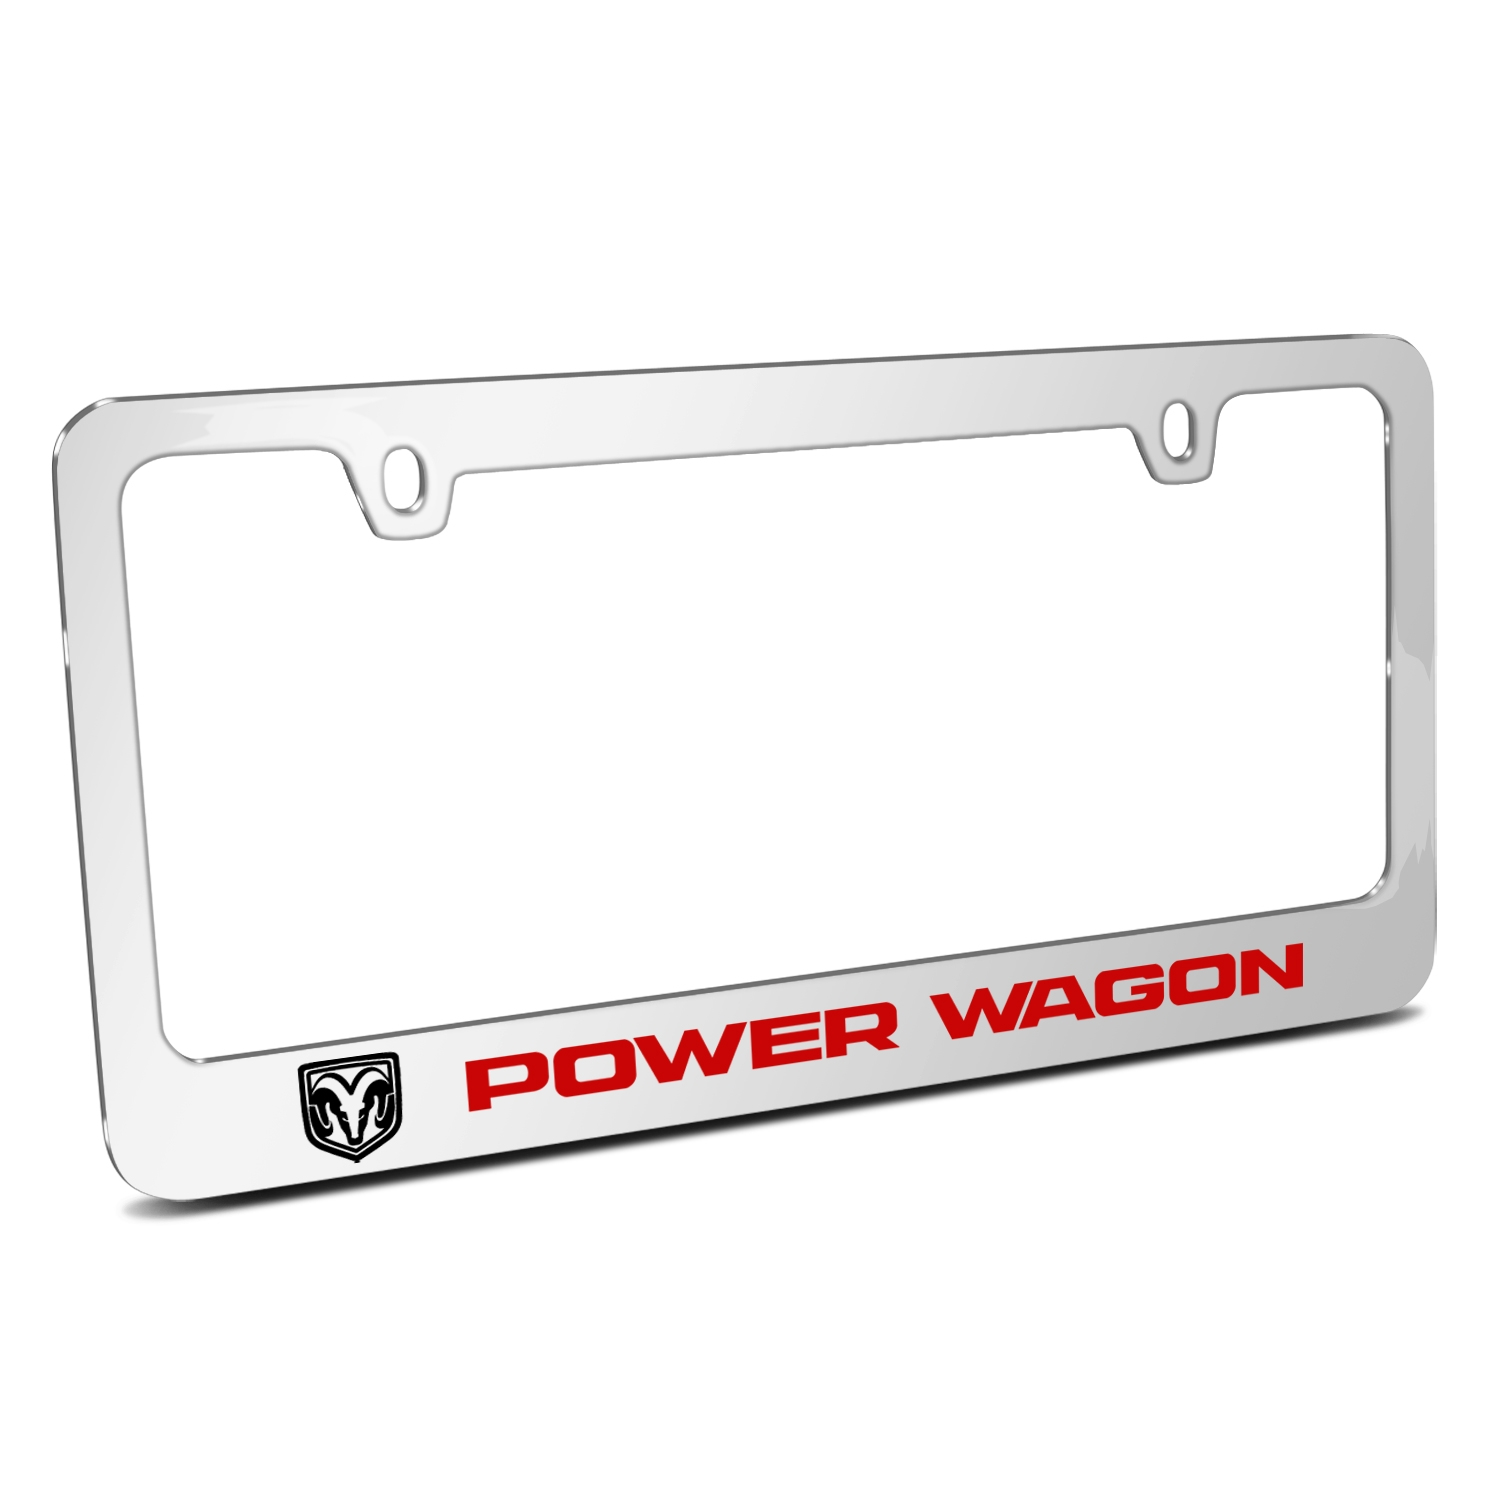 RAM Power Wagon Mirror Chrome Metal License Plate Frame